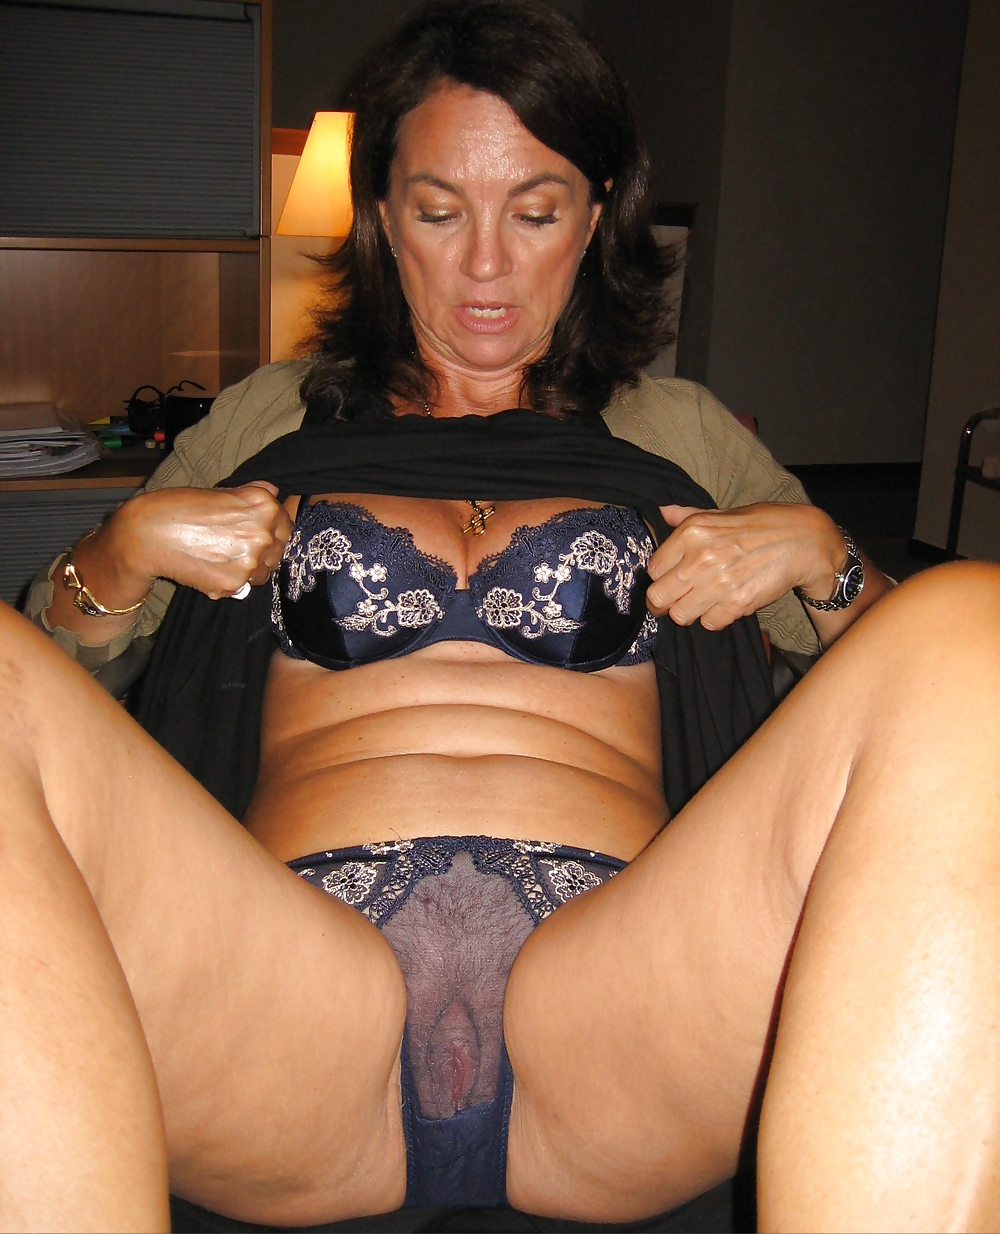 nude-older-amateur-wife-lingerie-intimate-couples-home-videos